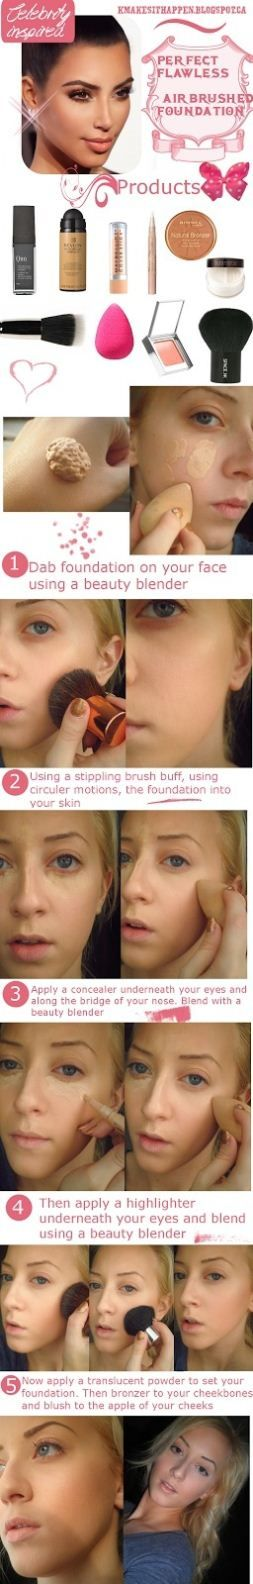 Flawless foundation coverage: changed up my make-up routine this morning and followed this.  My foundation looked great!